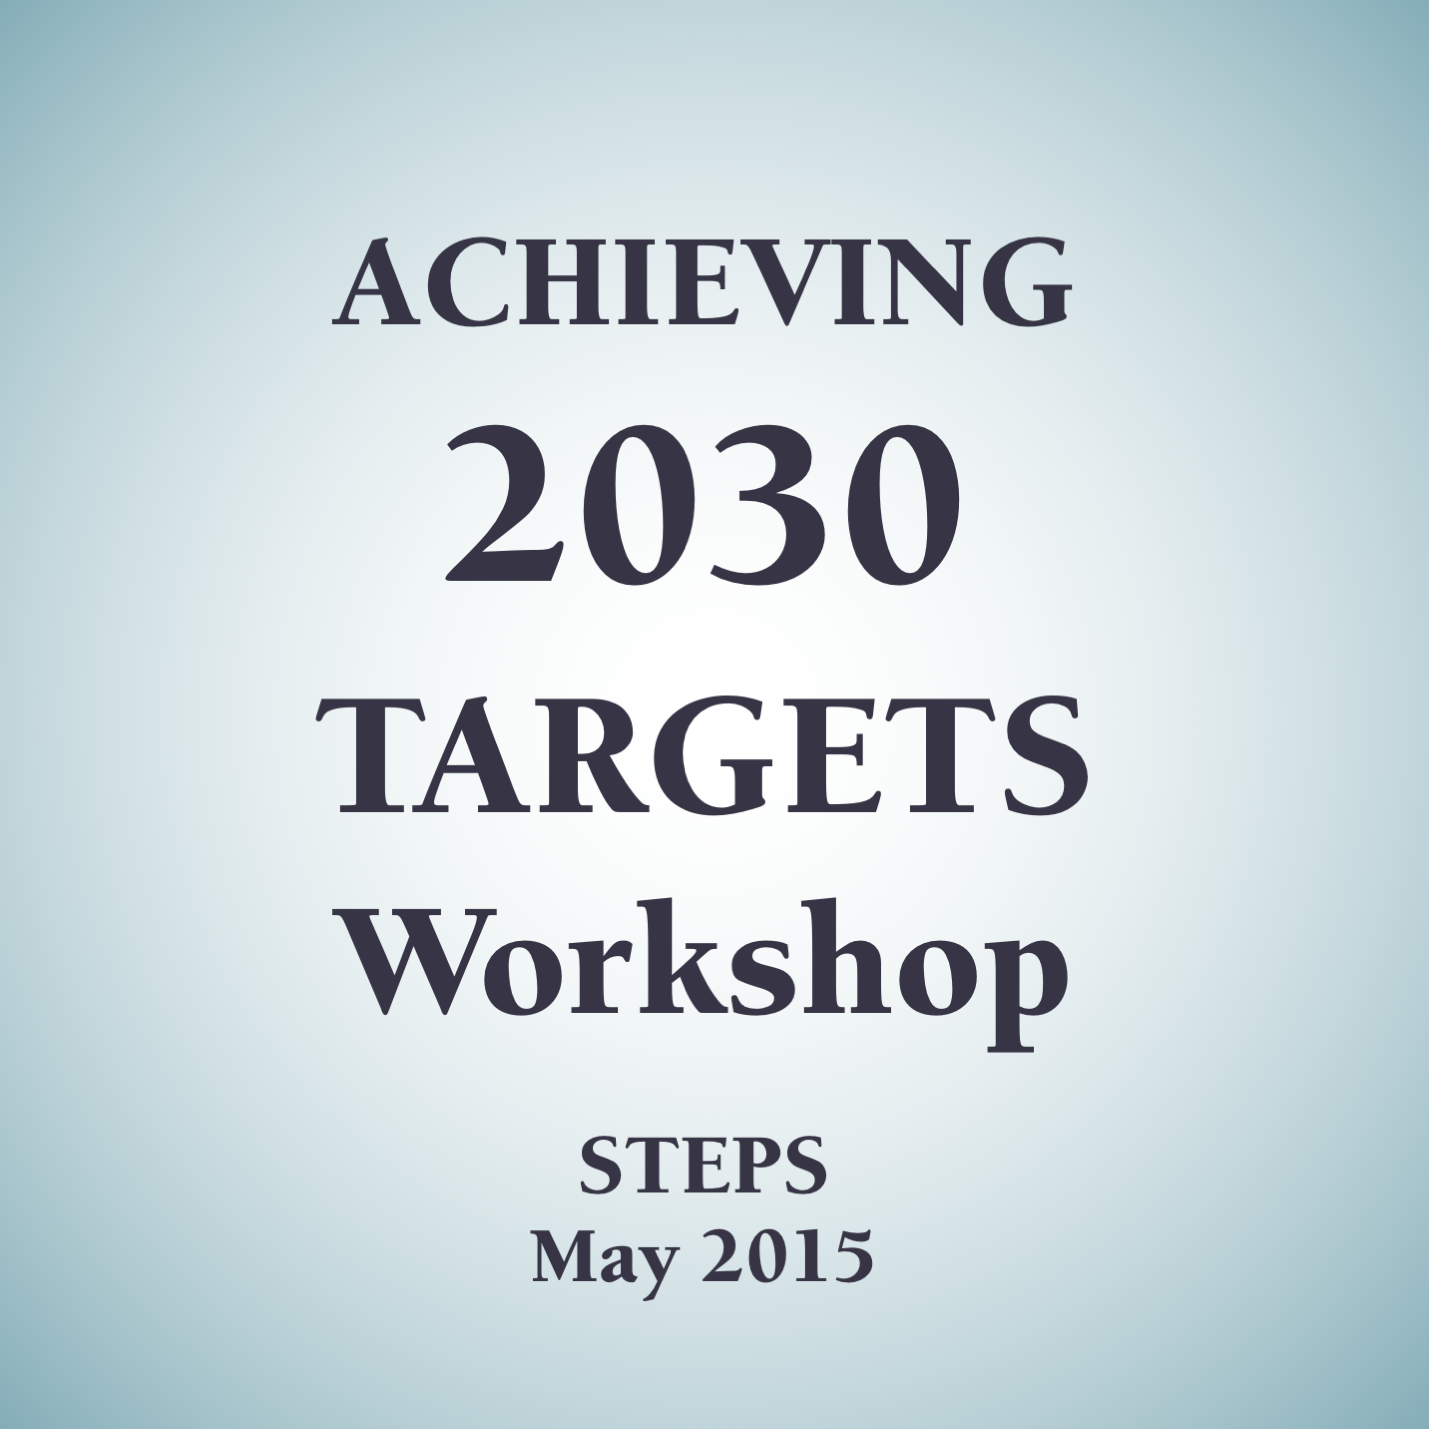 Achieving 2030 Targets Workshop